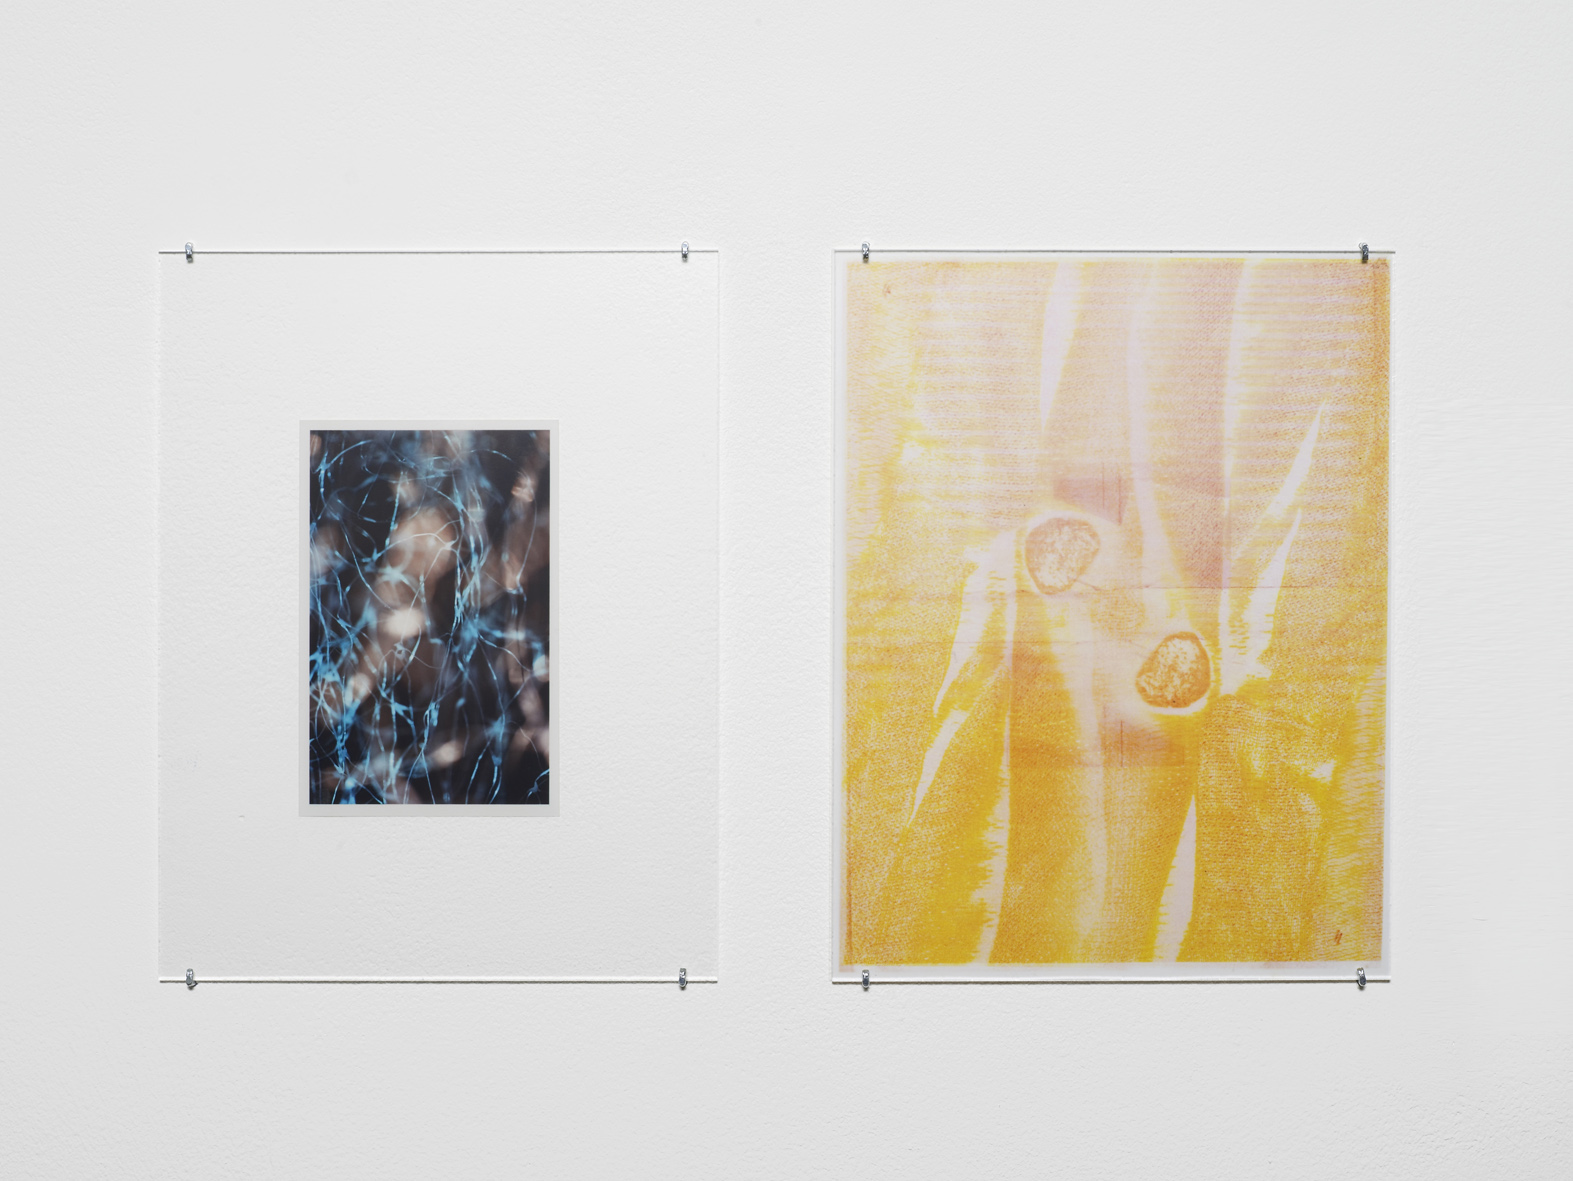 Untitled 2014-2015 Unique C-print, inkjet print, inkjet print on transparency, non-reflective perspex, L shaped pins  2 parts, each: 27.9 x 21.5 cm / 11 x 8.5 in